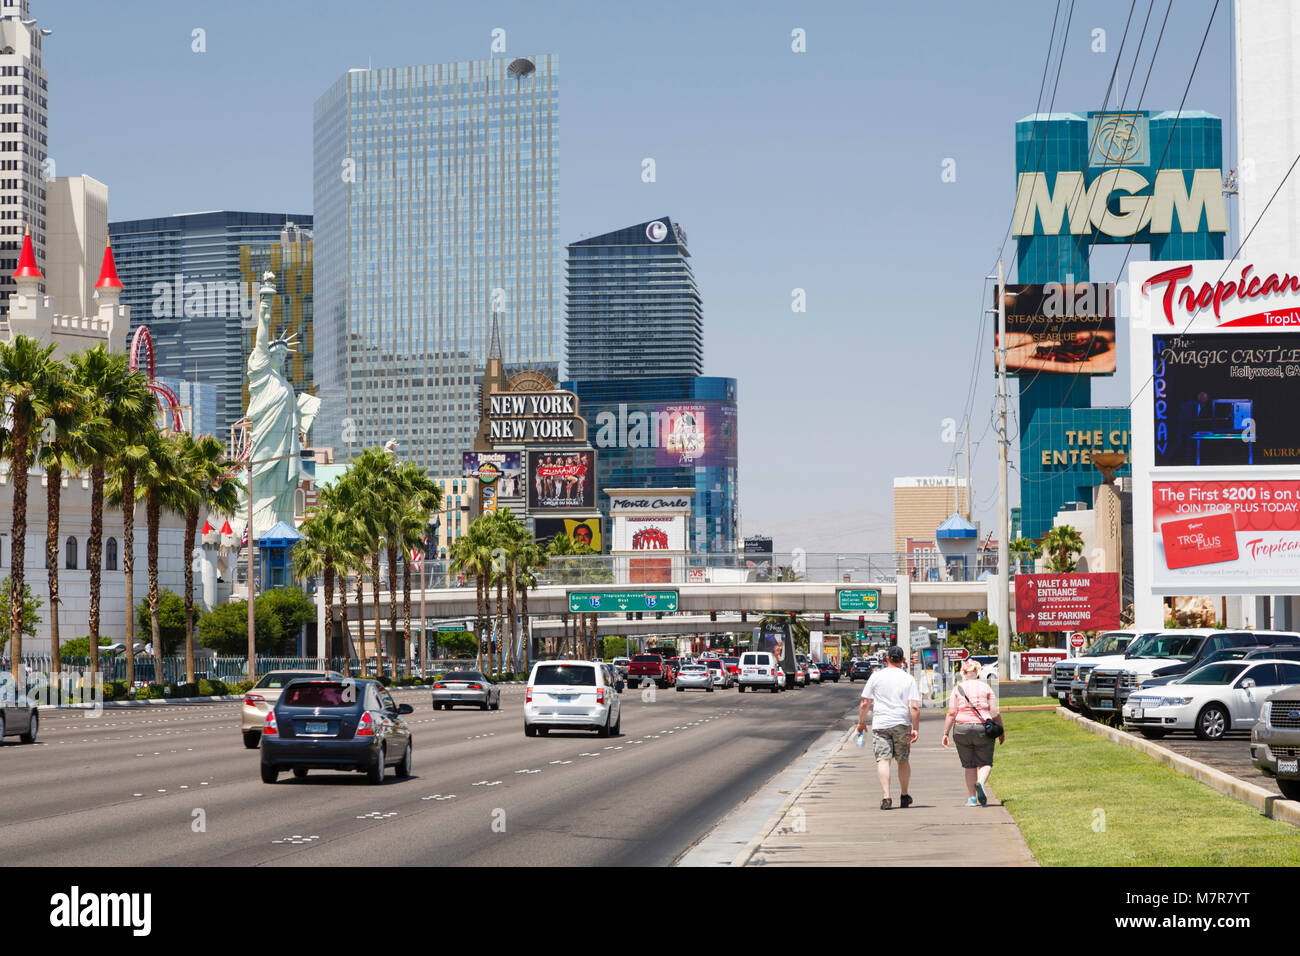 Las Vegas, USA - May 19, 2012. New York New York Hotel, Excalibur Hotel, and MGM Grand Hotels on The Strip, Las - Stock Image